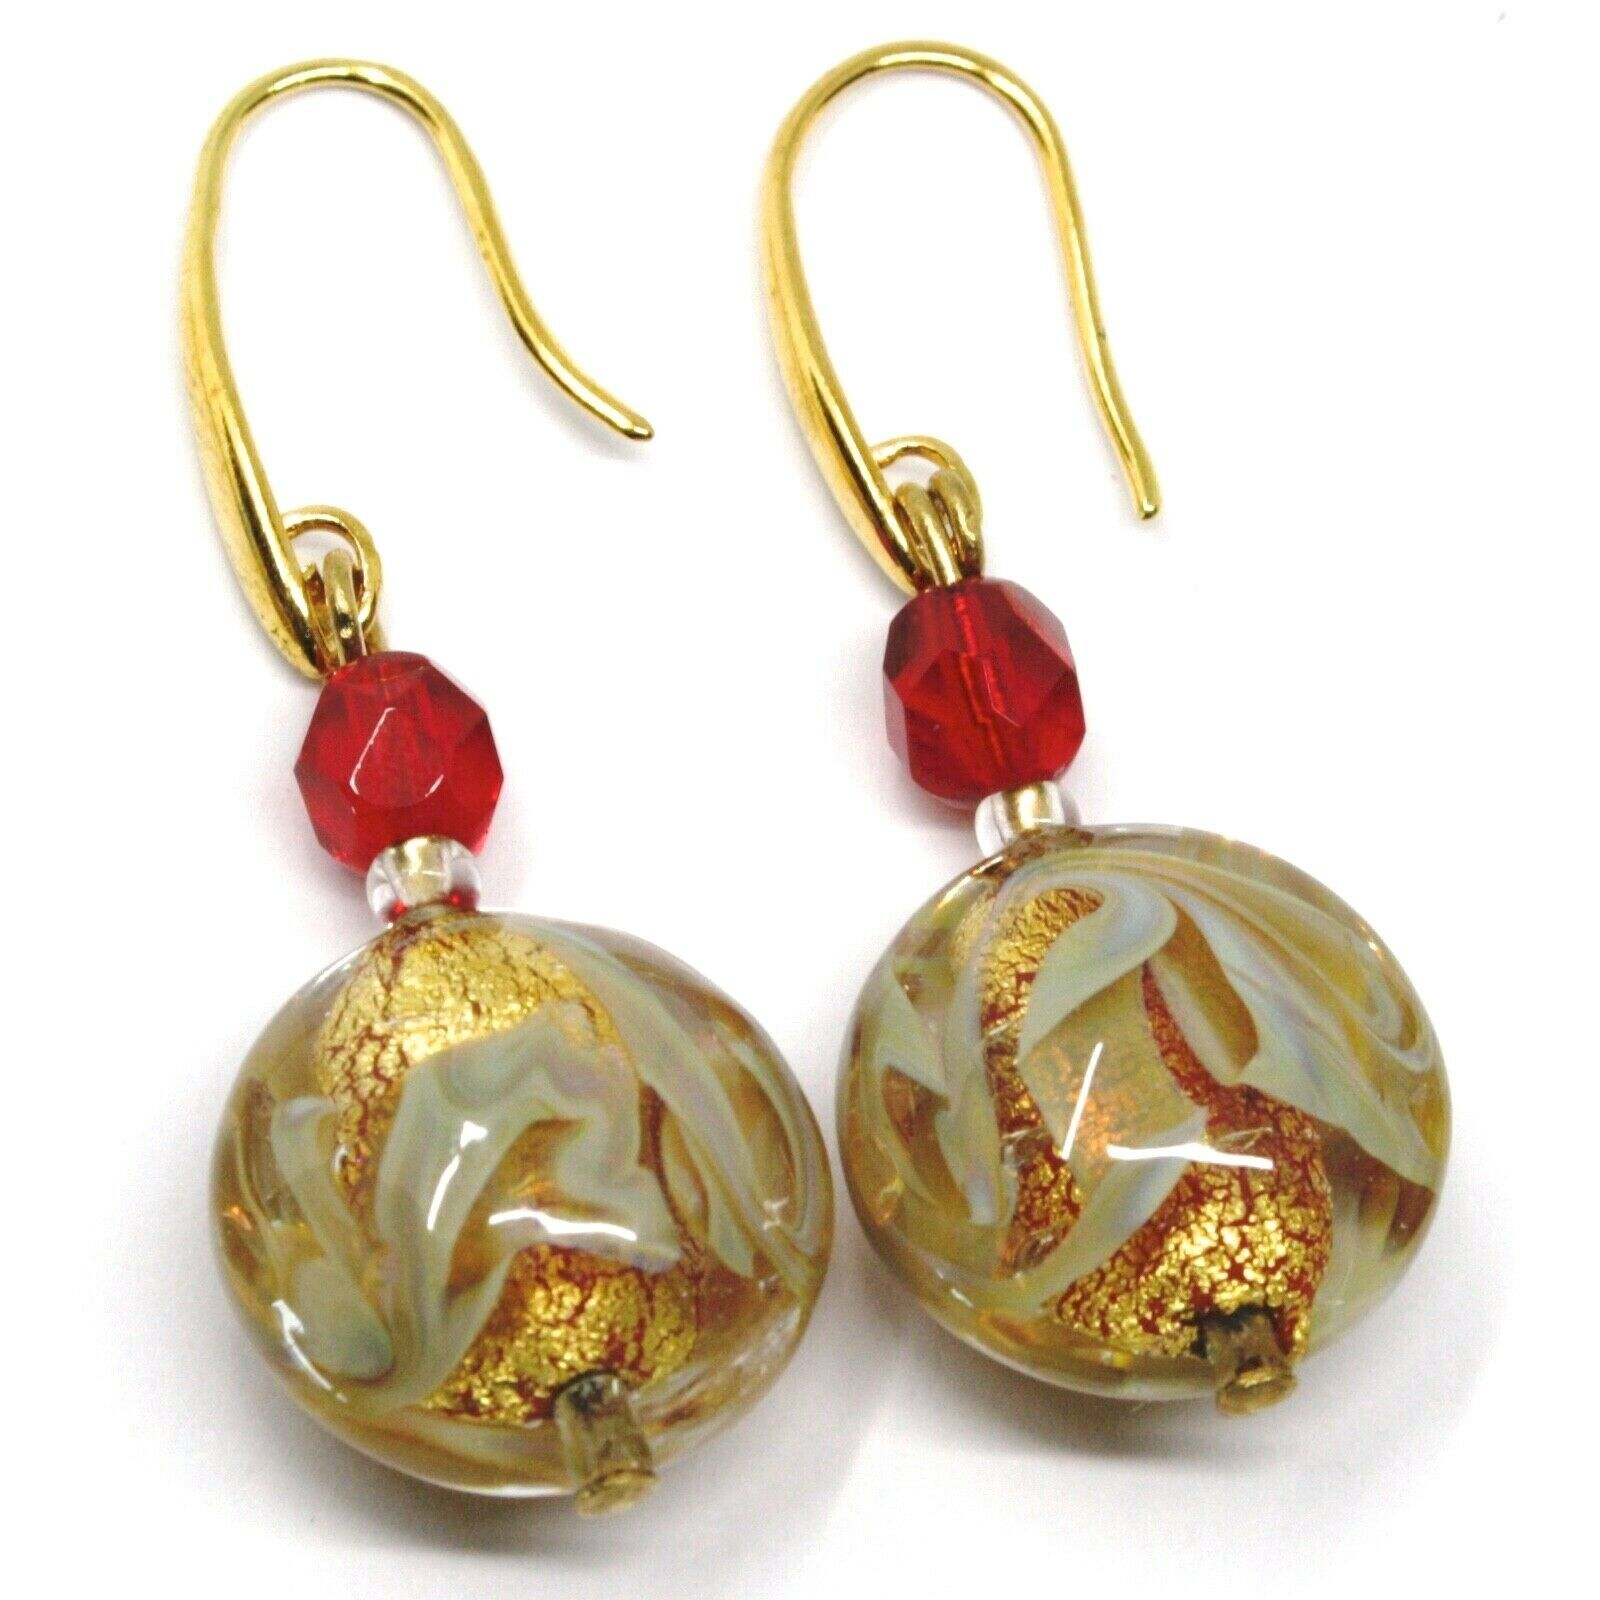 PENDANT HOOK EARRINGS RED YELLOW DISC MURANO GLASS GOLD LEAF MADE IN ITALY